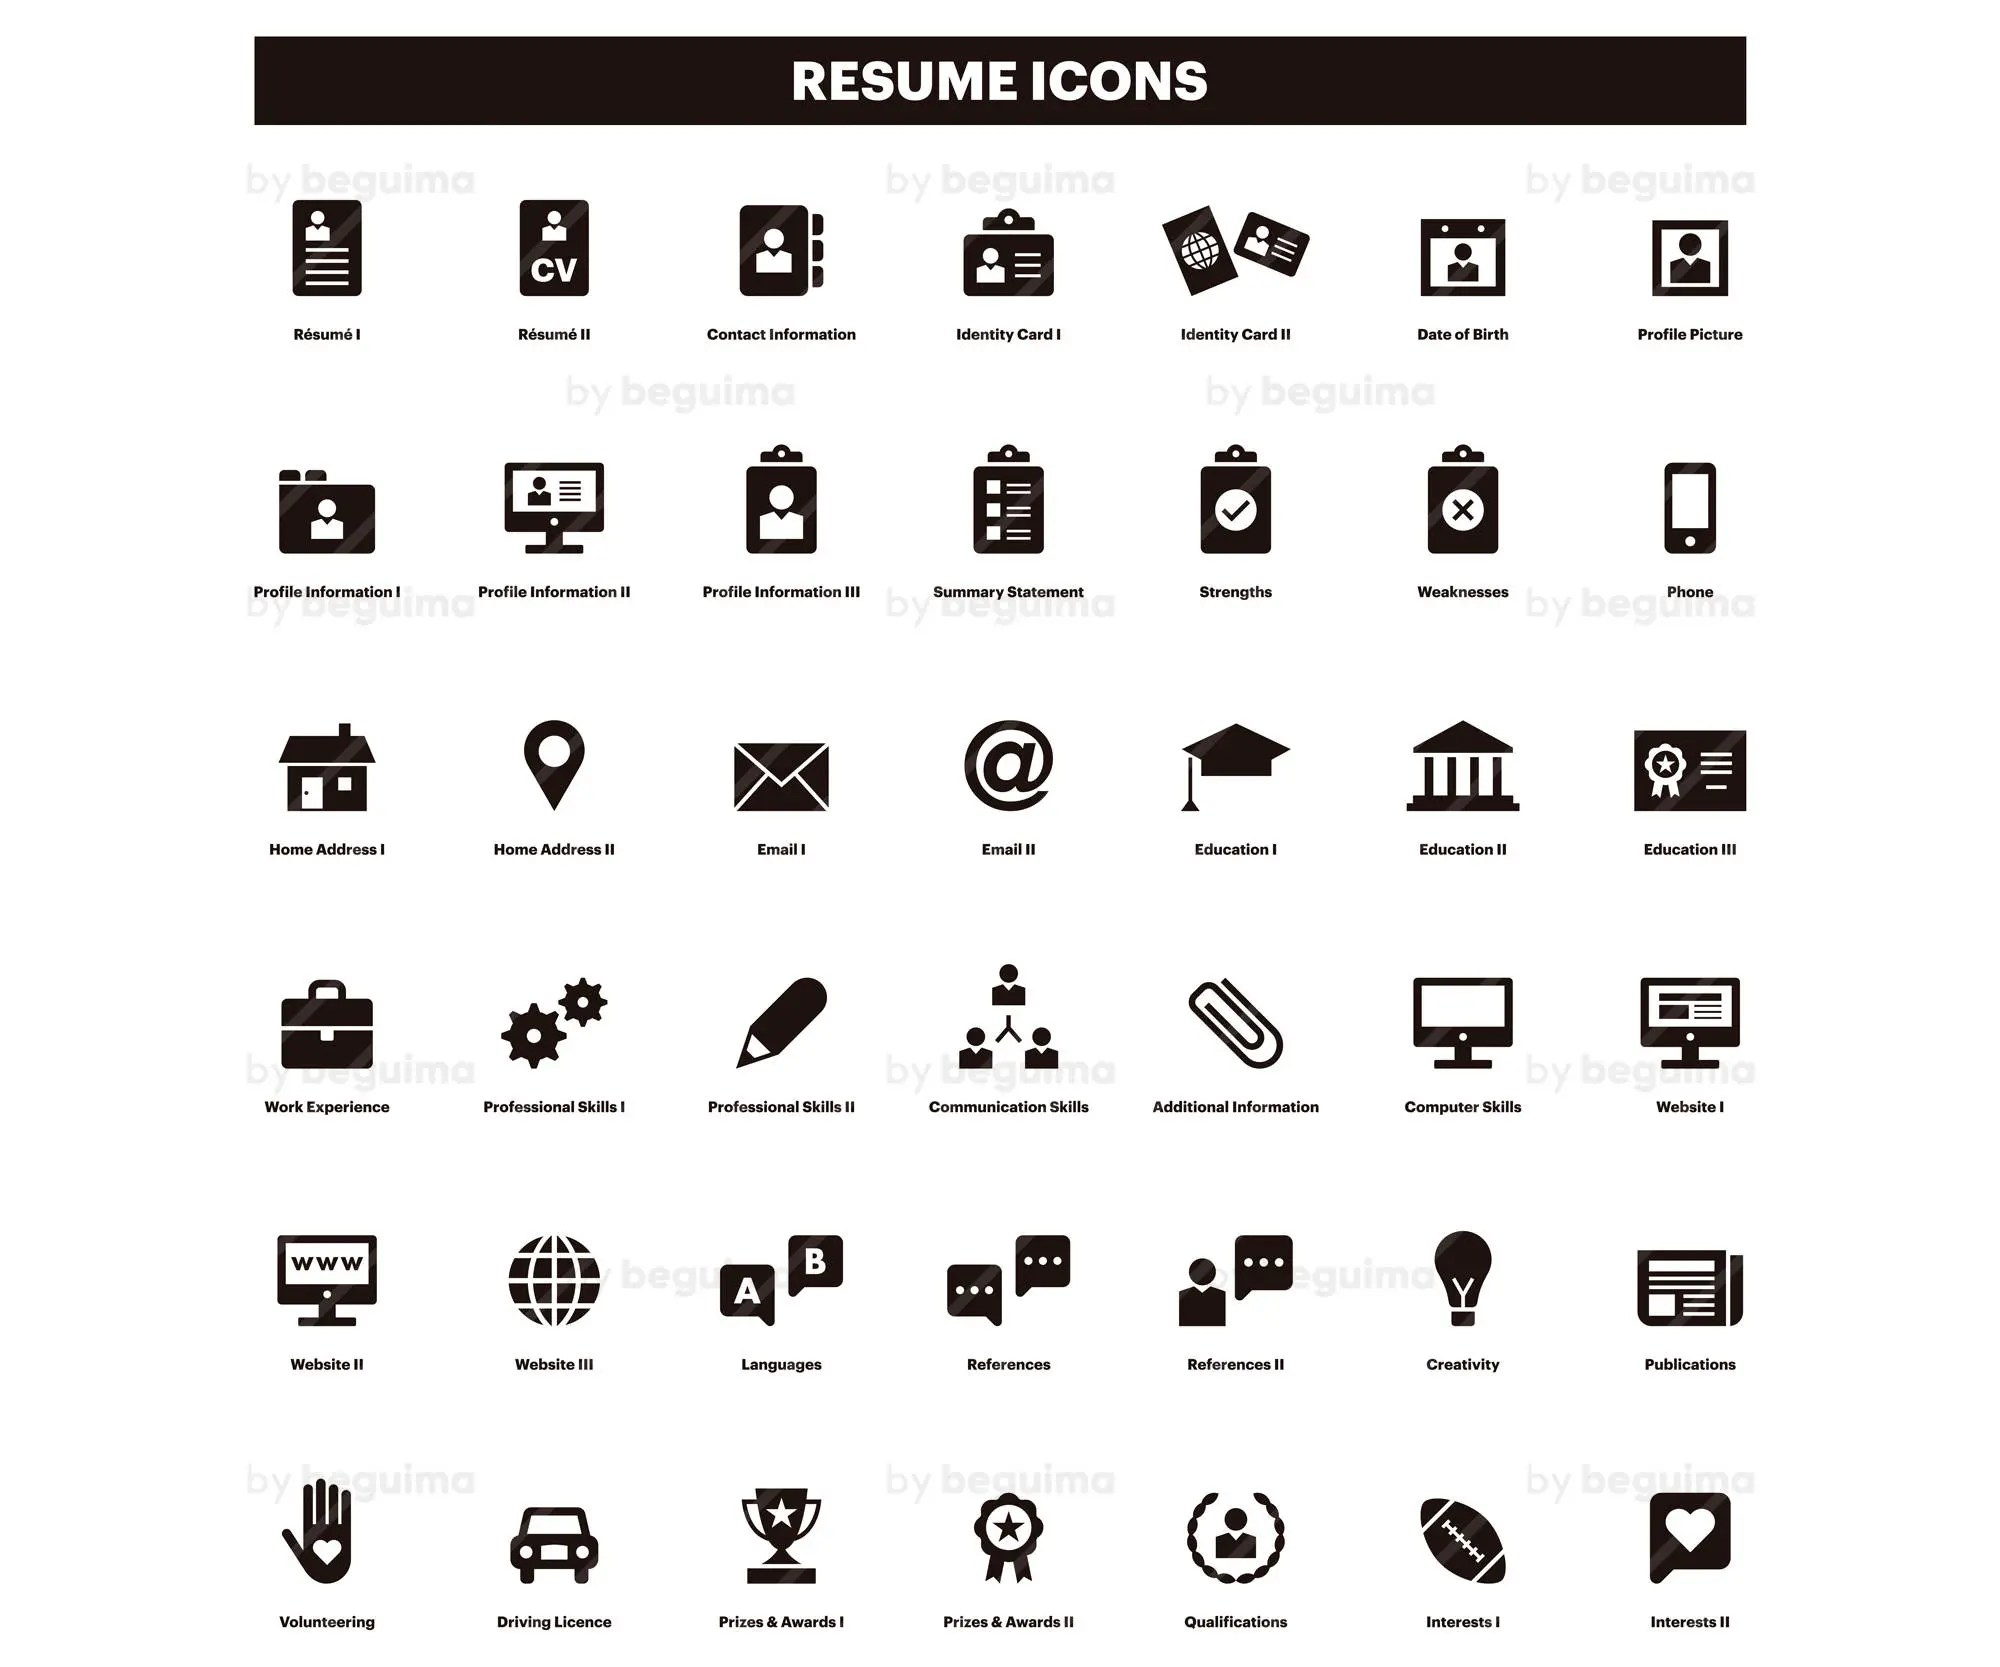 Resume Icons CV Clip Art Curriculum Clipart Set Of Icons Black Solid Glyph Flat Vector File